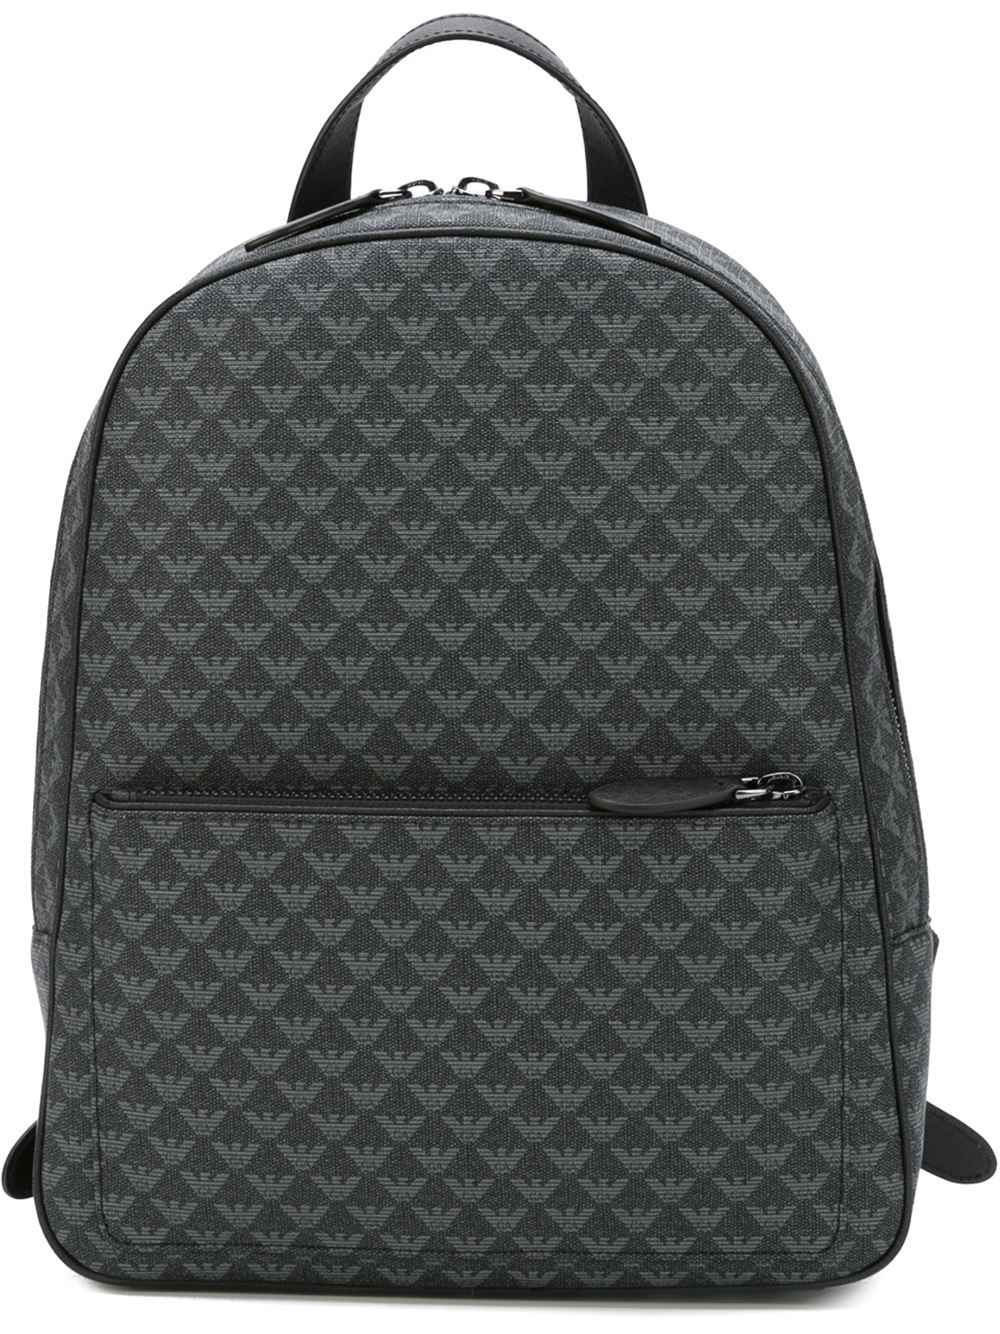 Emporio Armani Logo Print Backpack In Black For Men Lyst